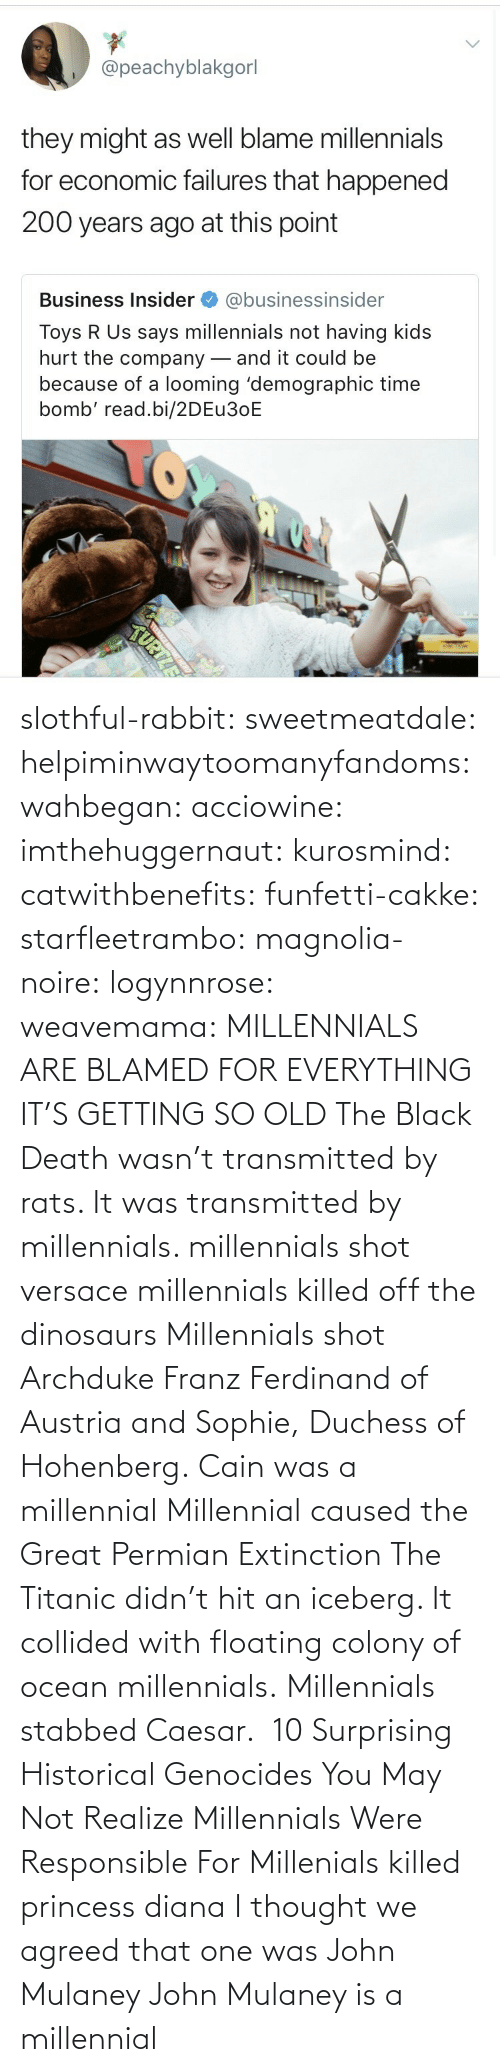 Dinosaurs: slothful-rabbit: sweetmeatdale:  helpiminwaytoomanyfandoms:   wahbegan:  acciowine:  imthehuggernaut:  kurosmind:   catwithbenefits:  funfetti-cakke:  starfleetrambo:  magnolia-noire:  logynnrose:  weavemama:  MILLENNIALS ARE BLAMED FOR EVERYTHING IT'S GETTING SO OLD  The Black Death wasn't transmitted by rats. It was transmitted by millennials.    millennials shot versace   millennials killed off the dinosaurs    Millennials shot Archduke Franz Ferdinand of Austria and Sophie, Duchess of Hohenberg.   Cain was a millennial  Millennial caused the Great Permian Extinction   The Titanic didn't hit an iceberg. It collided with floating colony of ocean millennials.  Millennials stabbed Caesar.   10 Surprising Historical Genocides You May Not Realize Millennials Were Responsible For    Millenials killed princess diana    I thought we agreed that one was John Mulaney     John Mulaney is a millennial